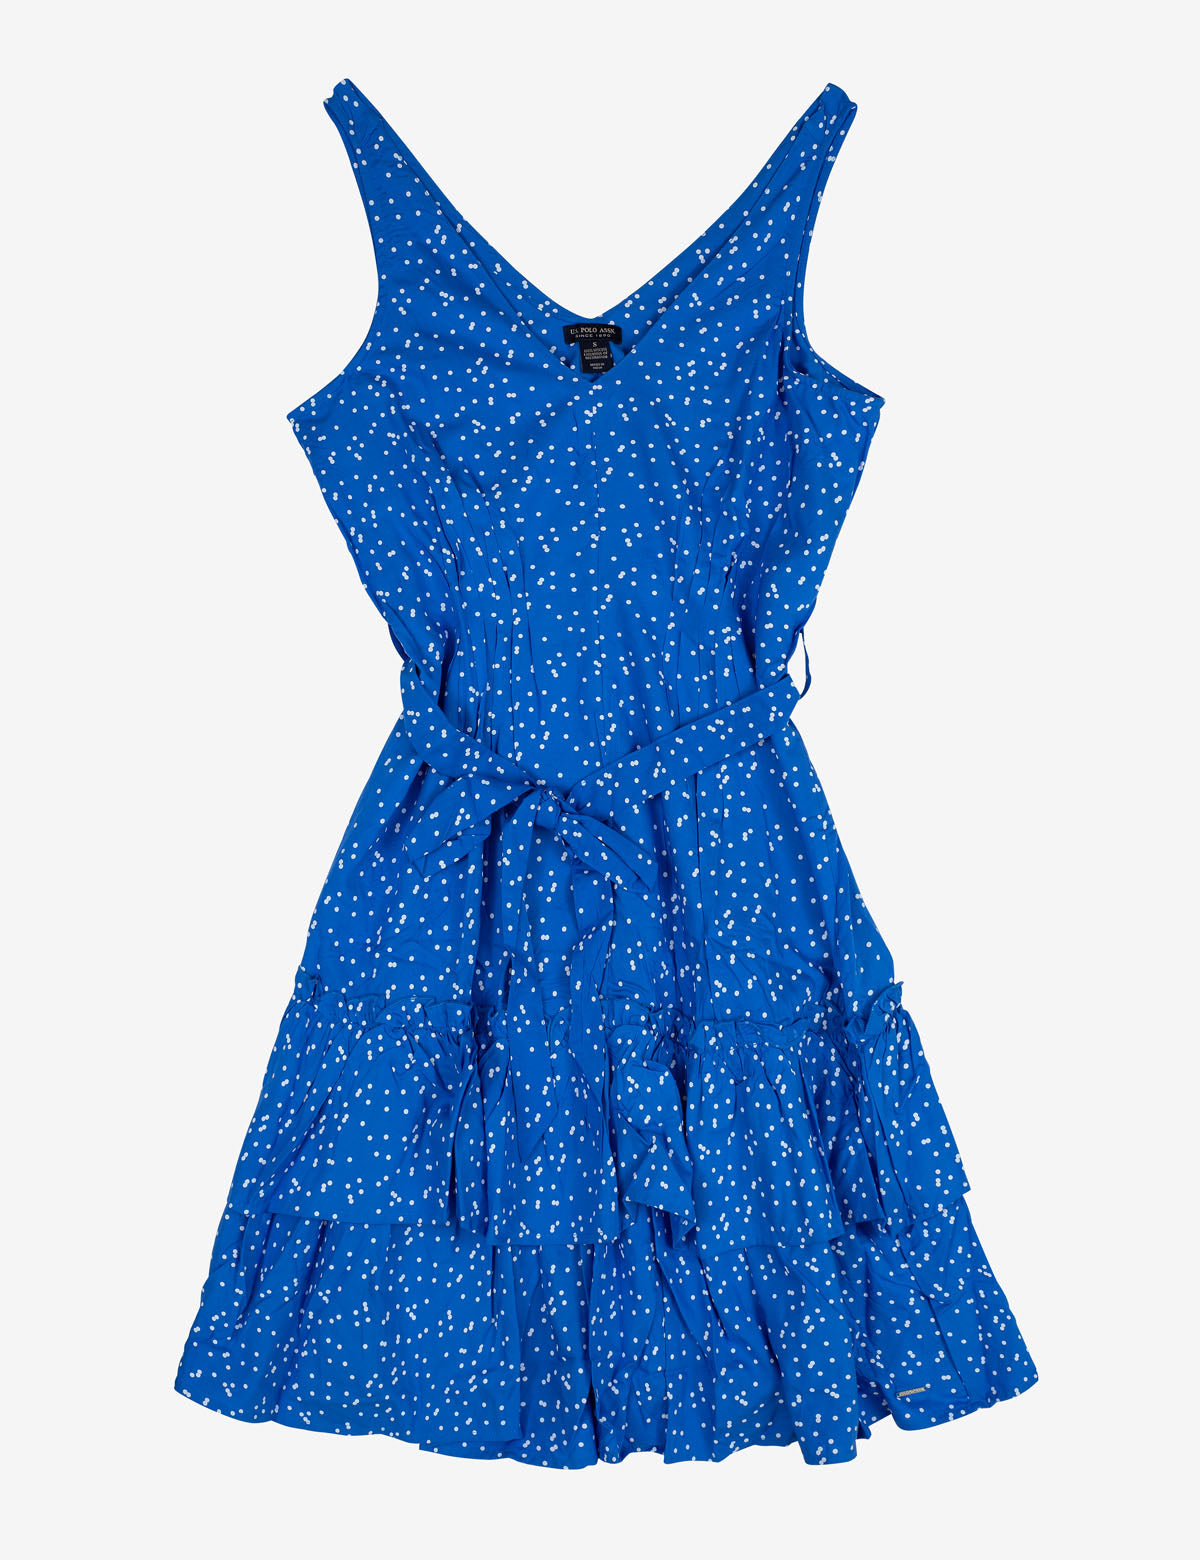 RUFFLE DOT DRESS - U.S. Polo Assn.